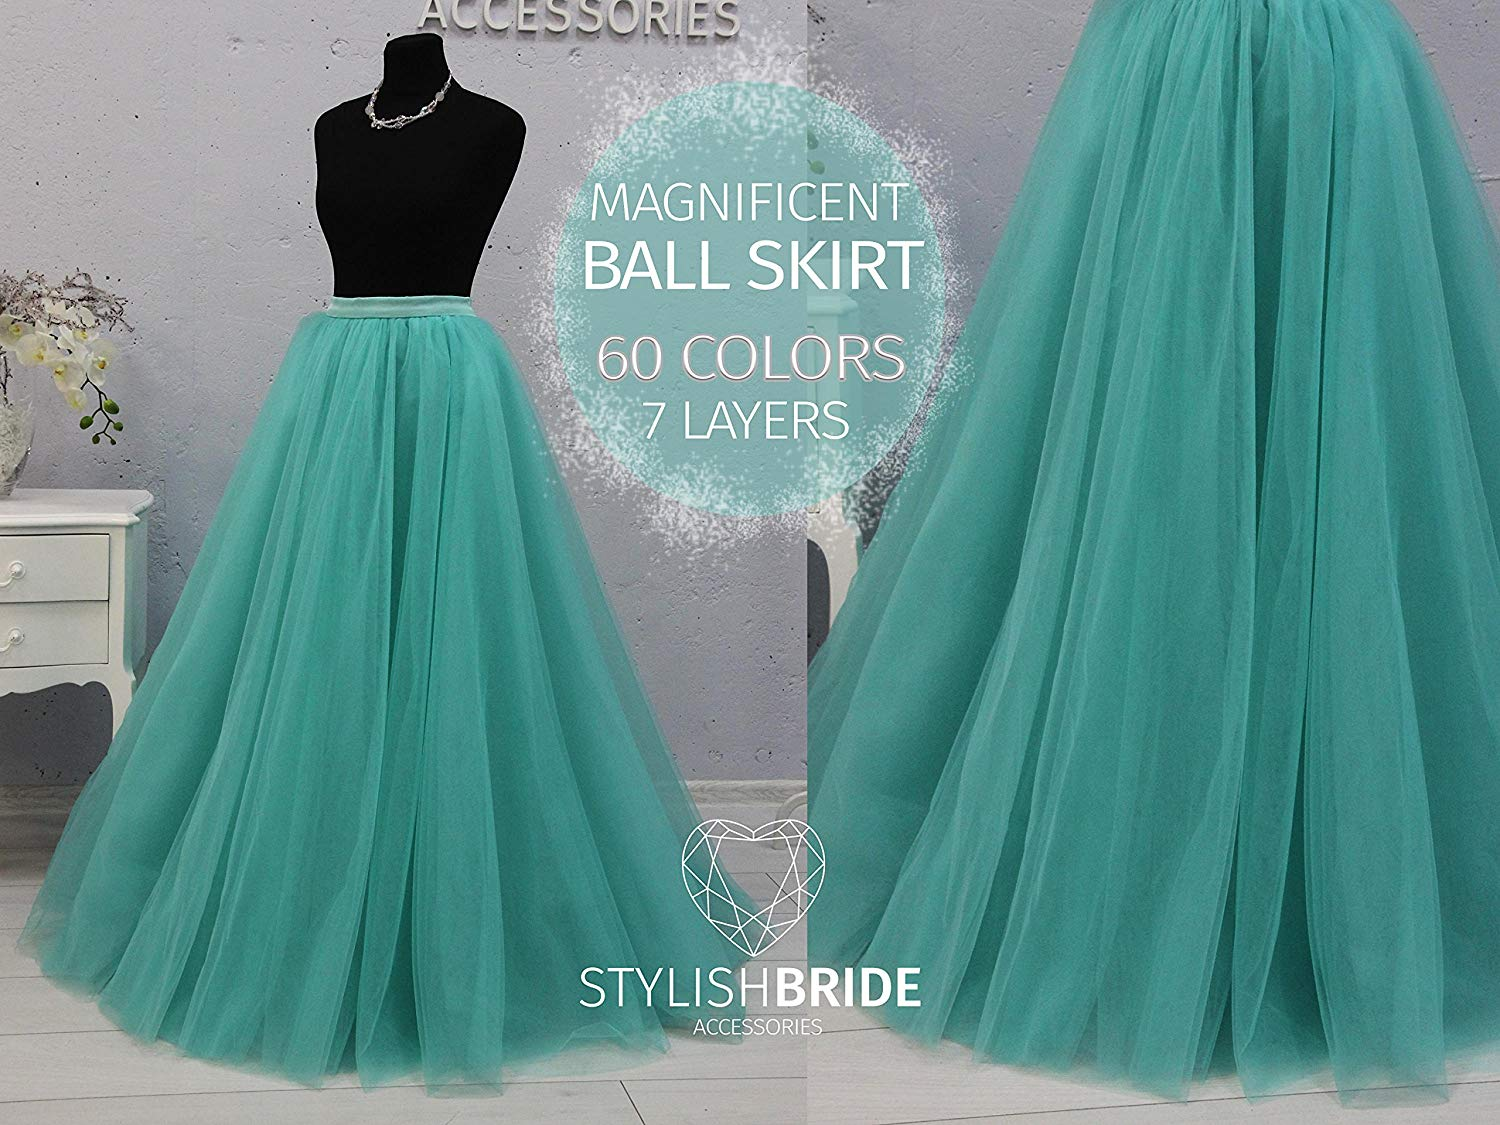 3526c20dc0 Get Quotations · Ball Wedding Tulle Wedding Floor Skirt, Ivory White Pink  Blush Mint Tulle Skirt Bridal,